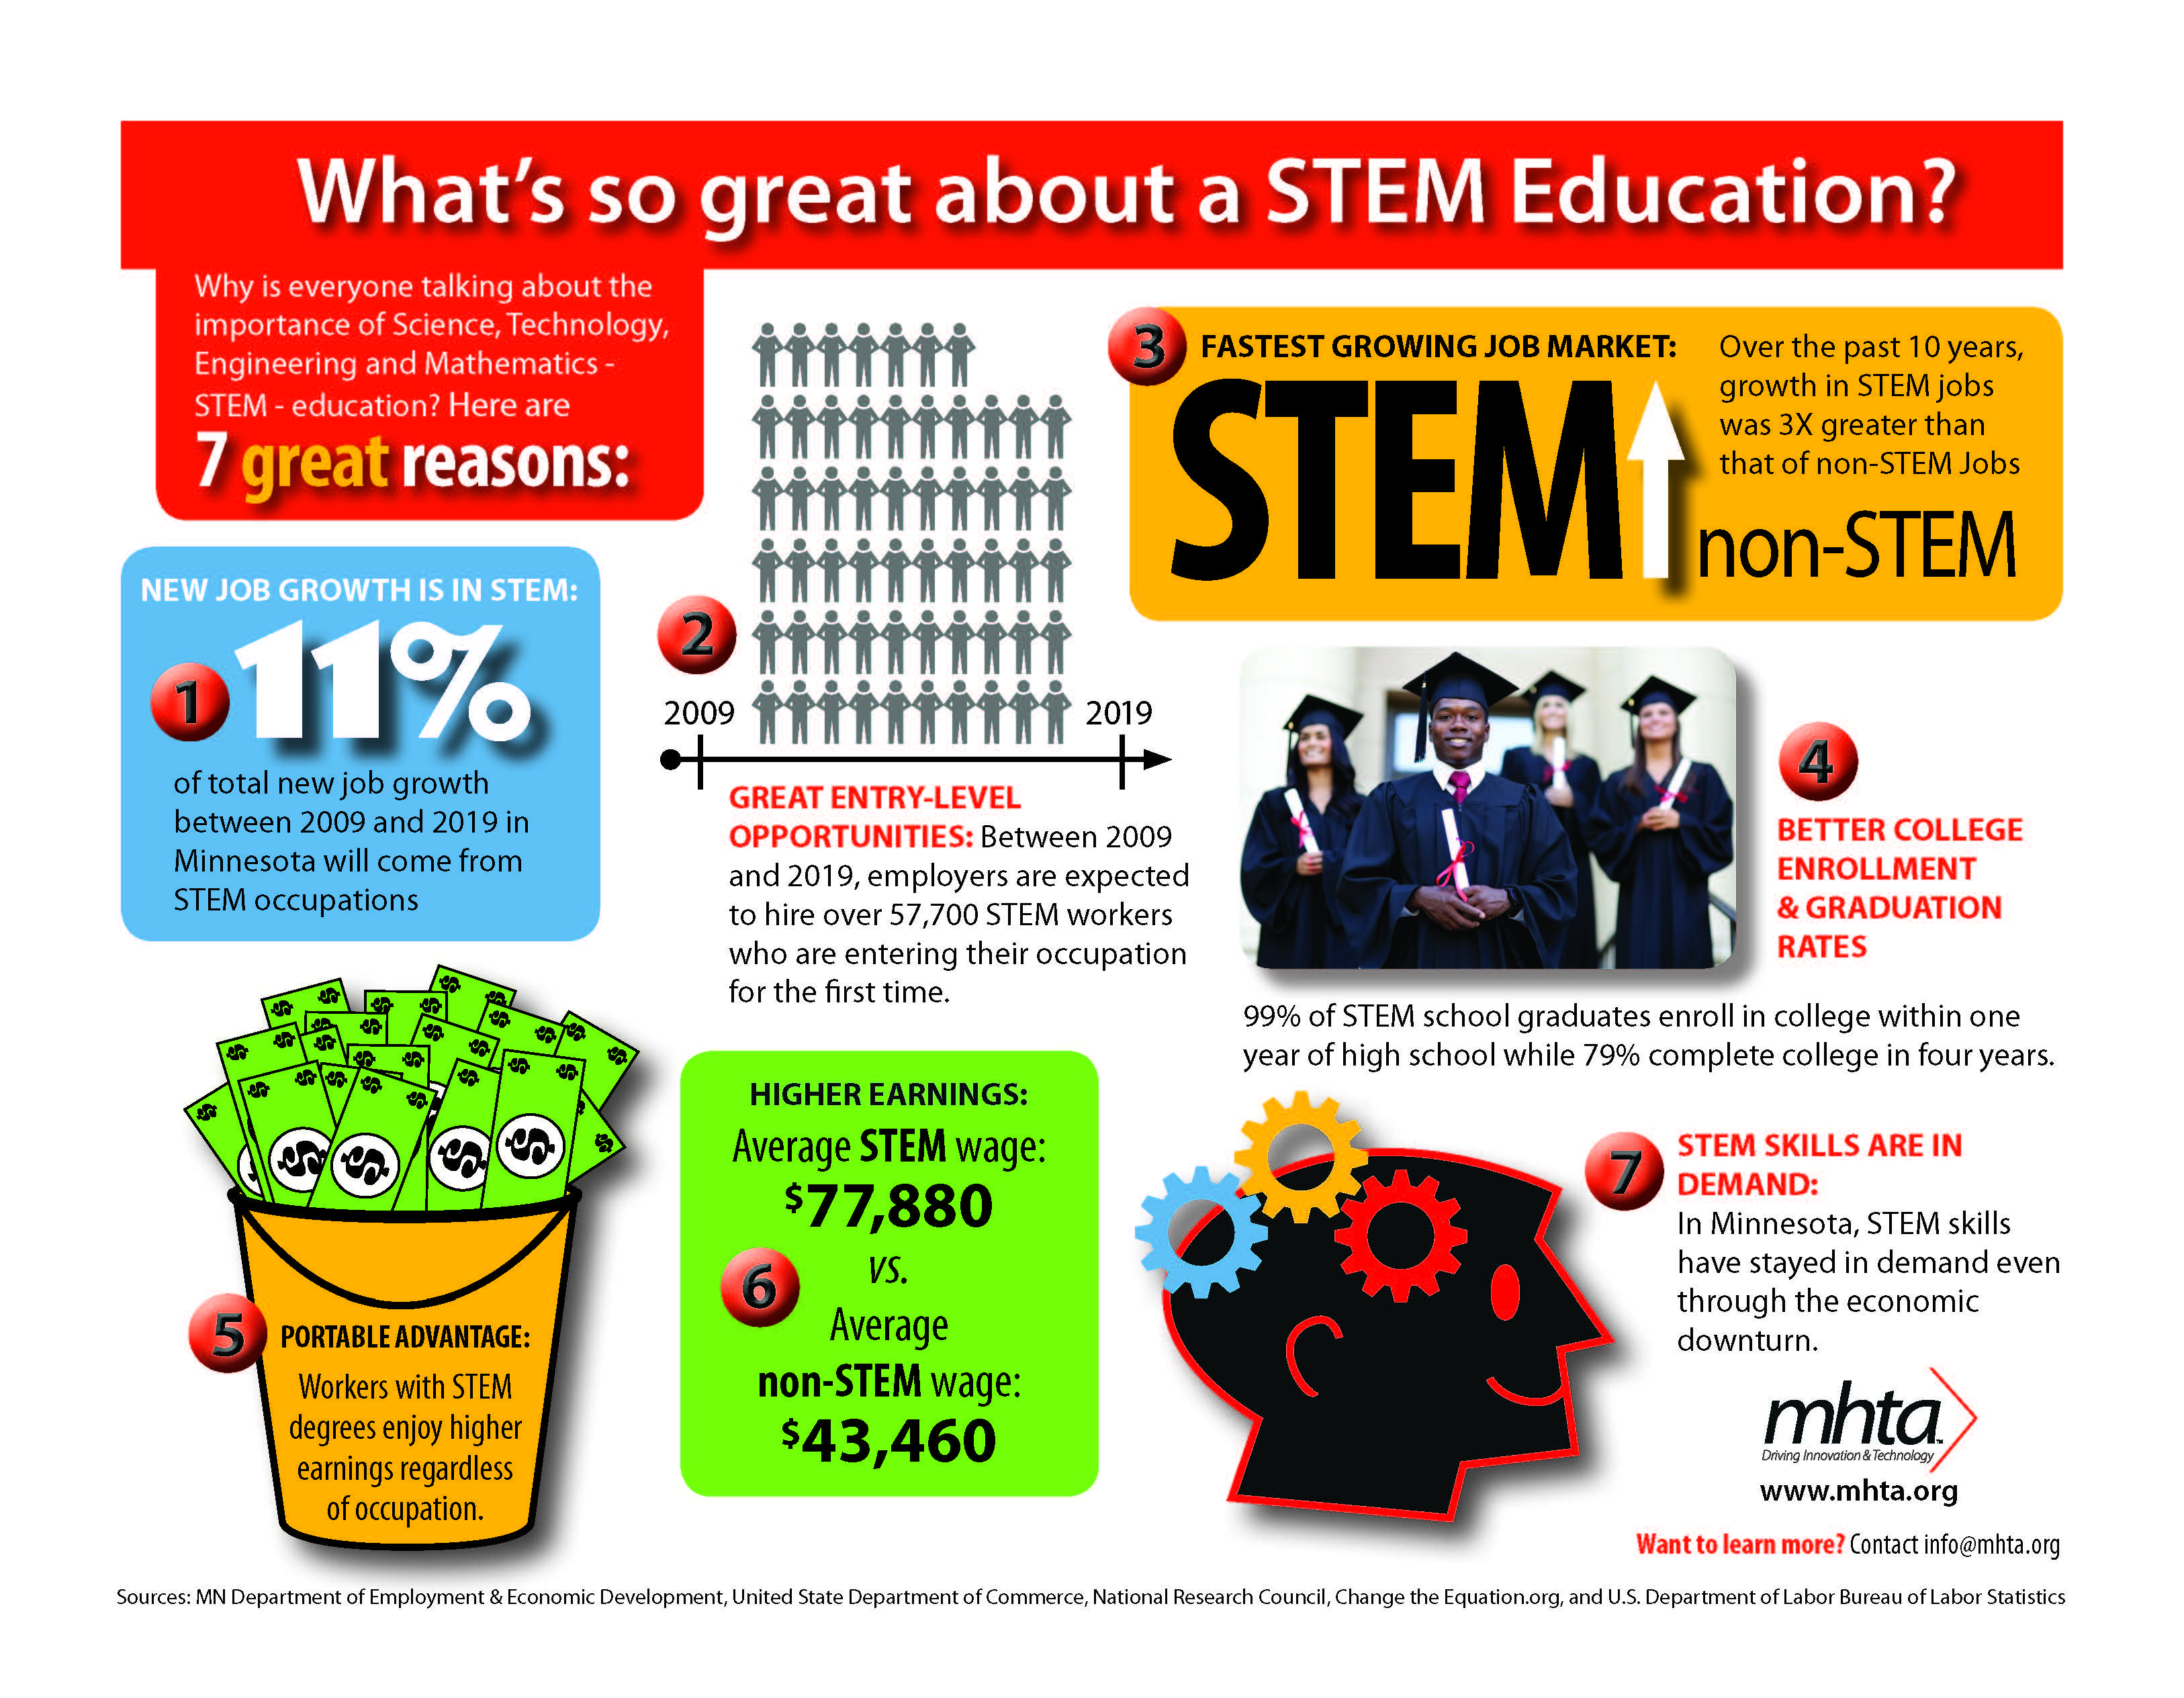 stem-education-in-malaysia